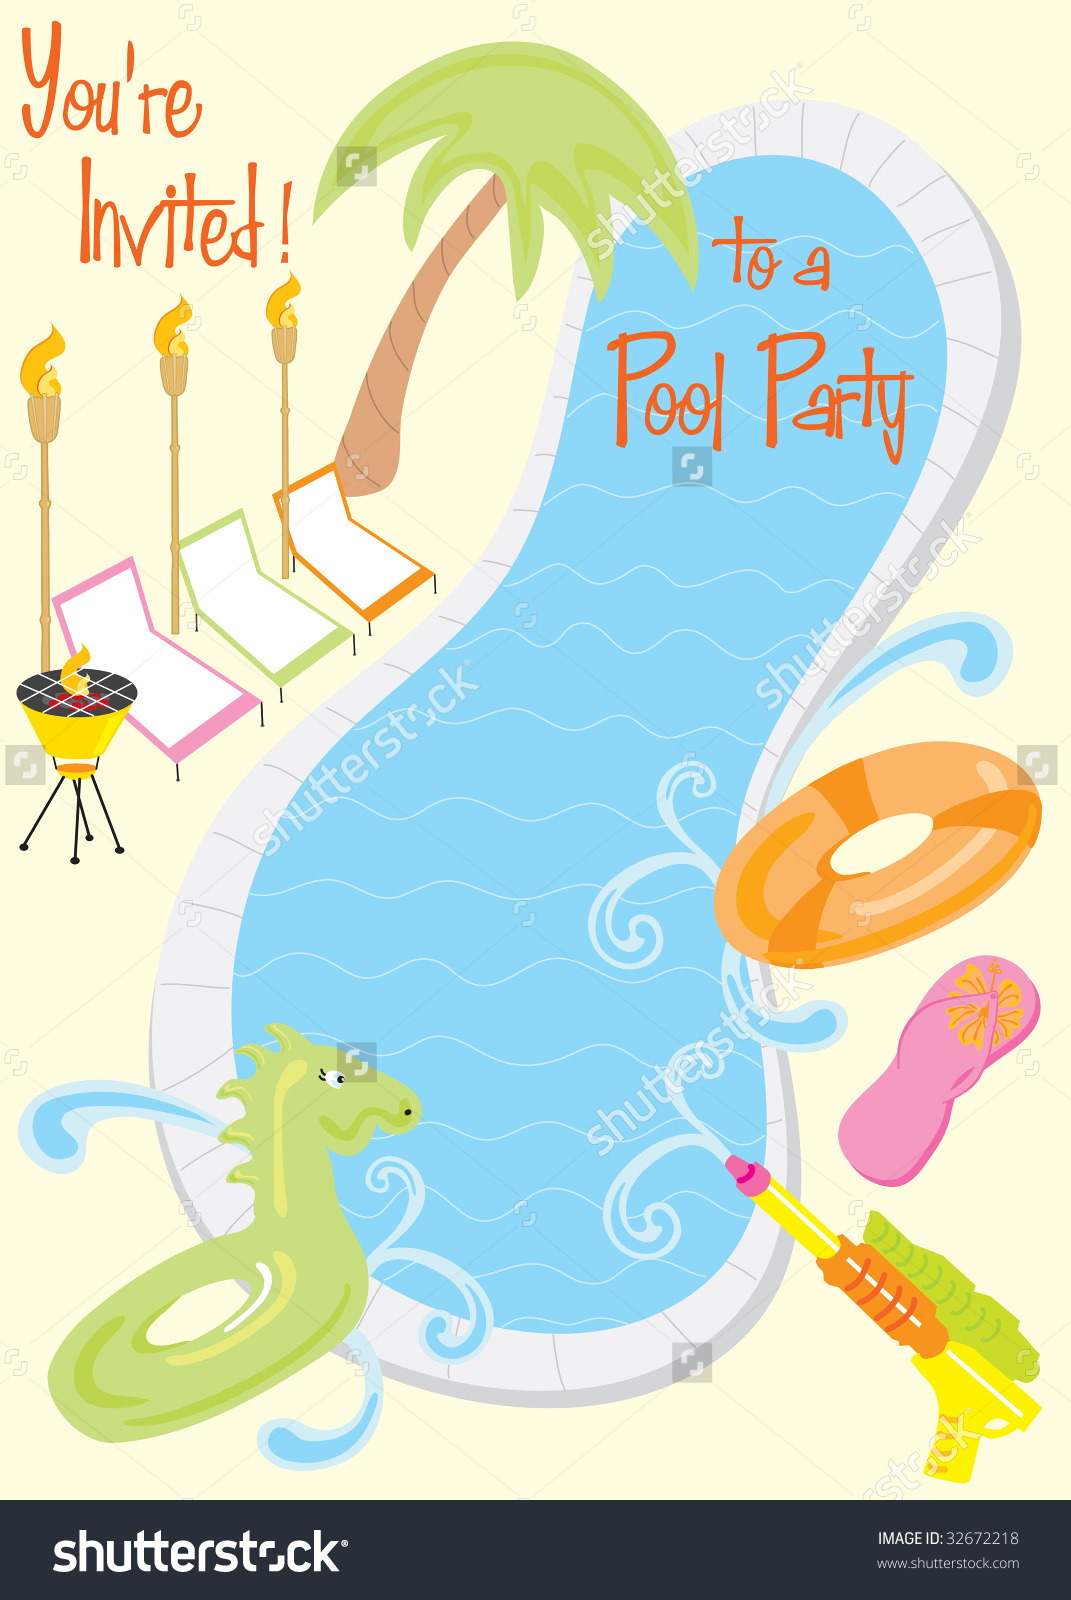 Pool Party Clipart | Free download best Pool Party Clipart on ...